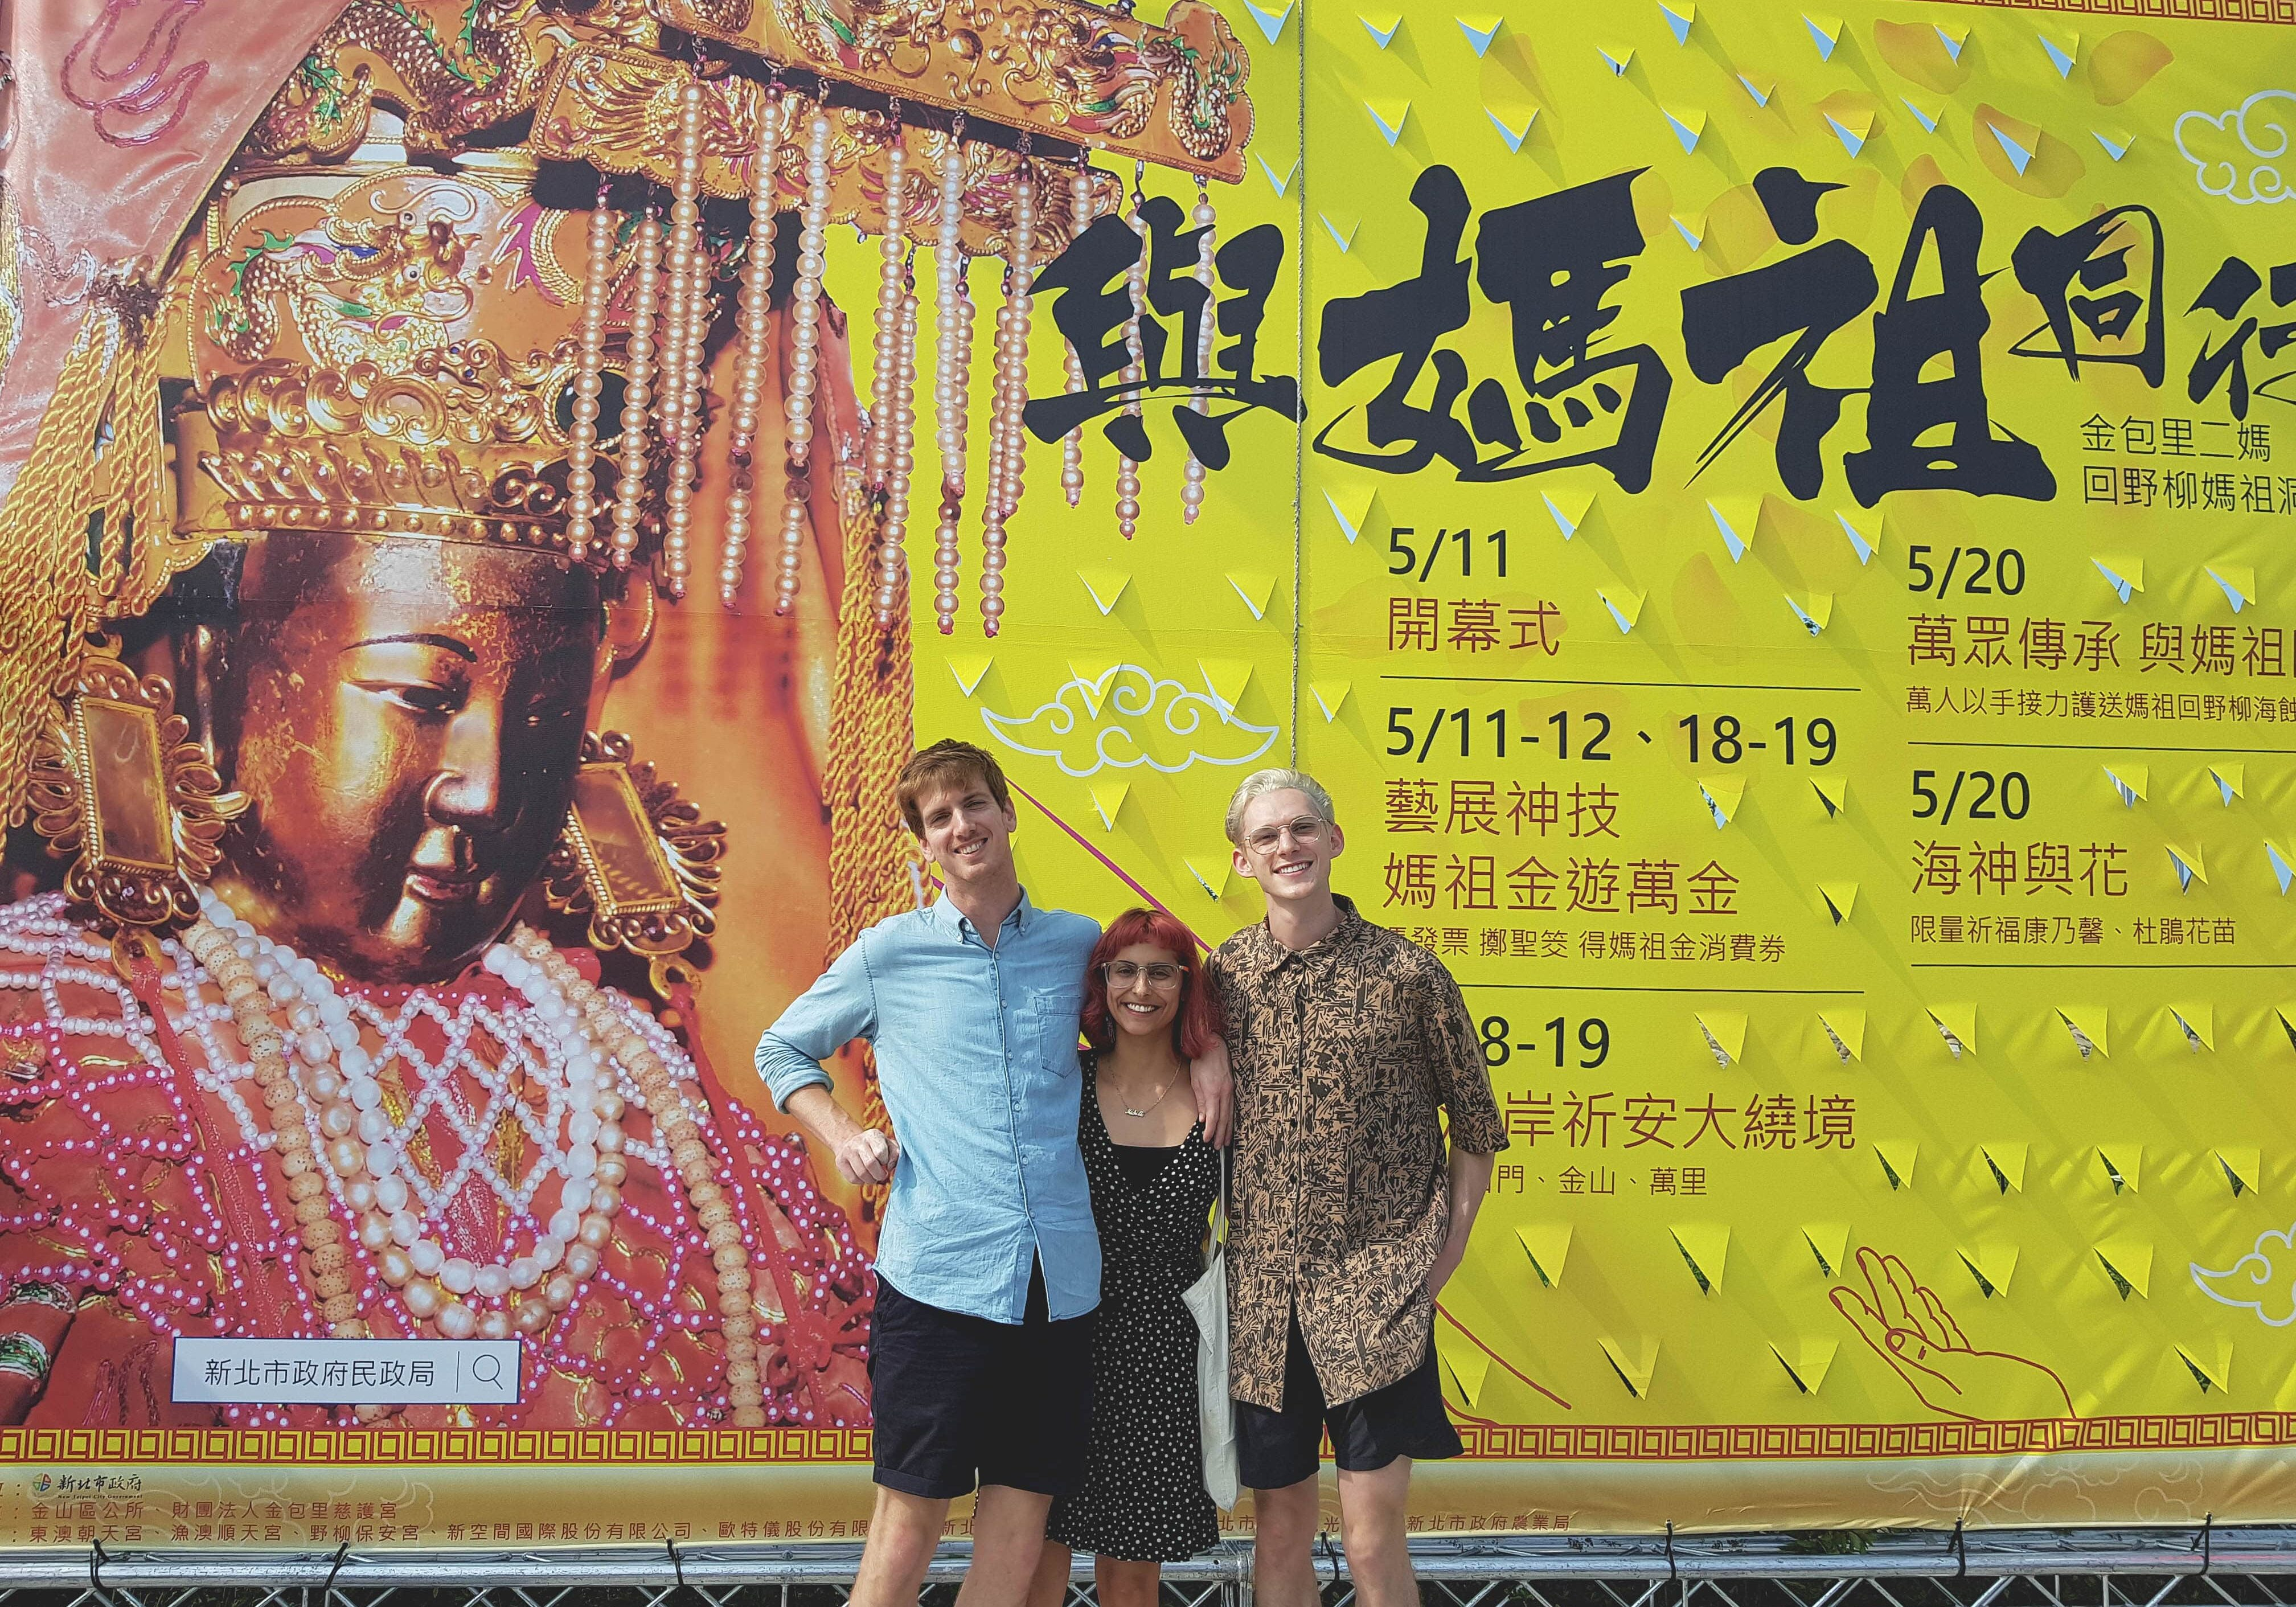 Peter, Michelle and Taylor in front of Mazu Goddess Festival poster.